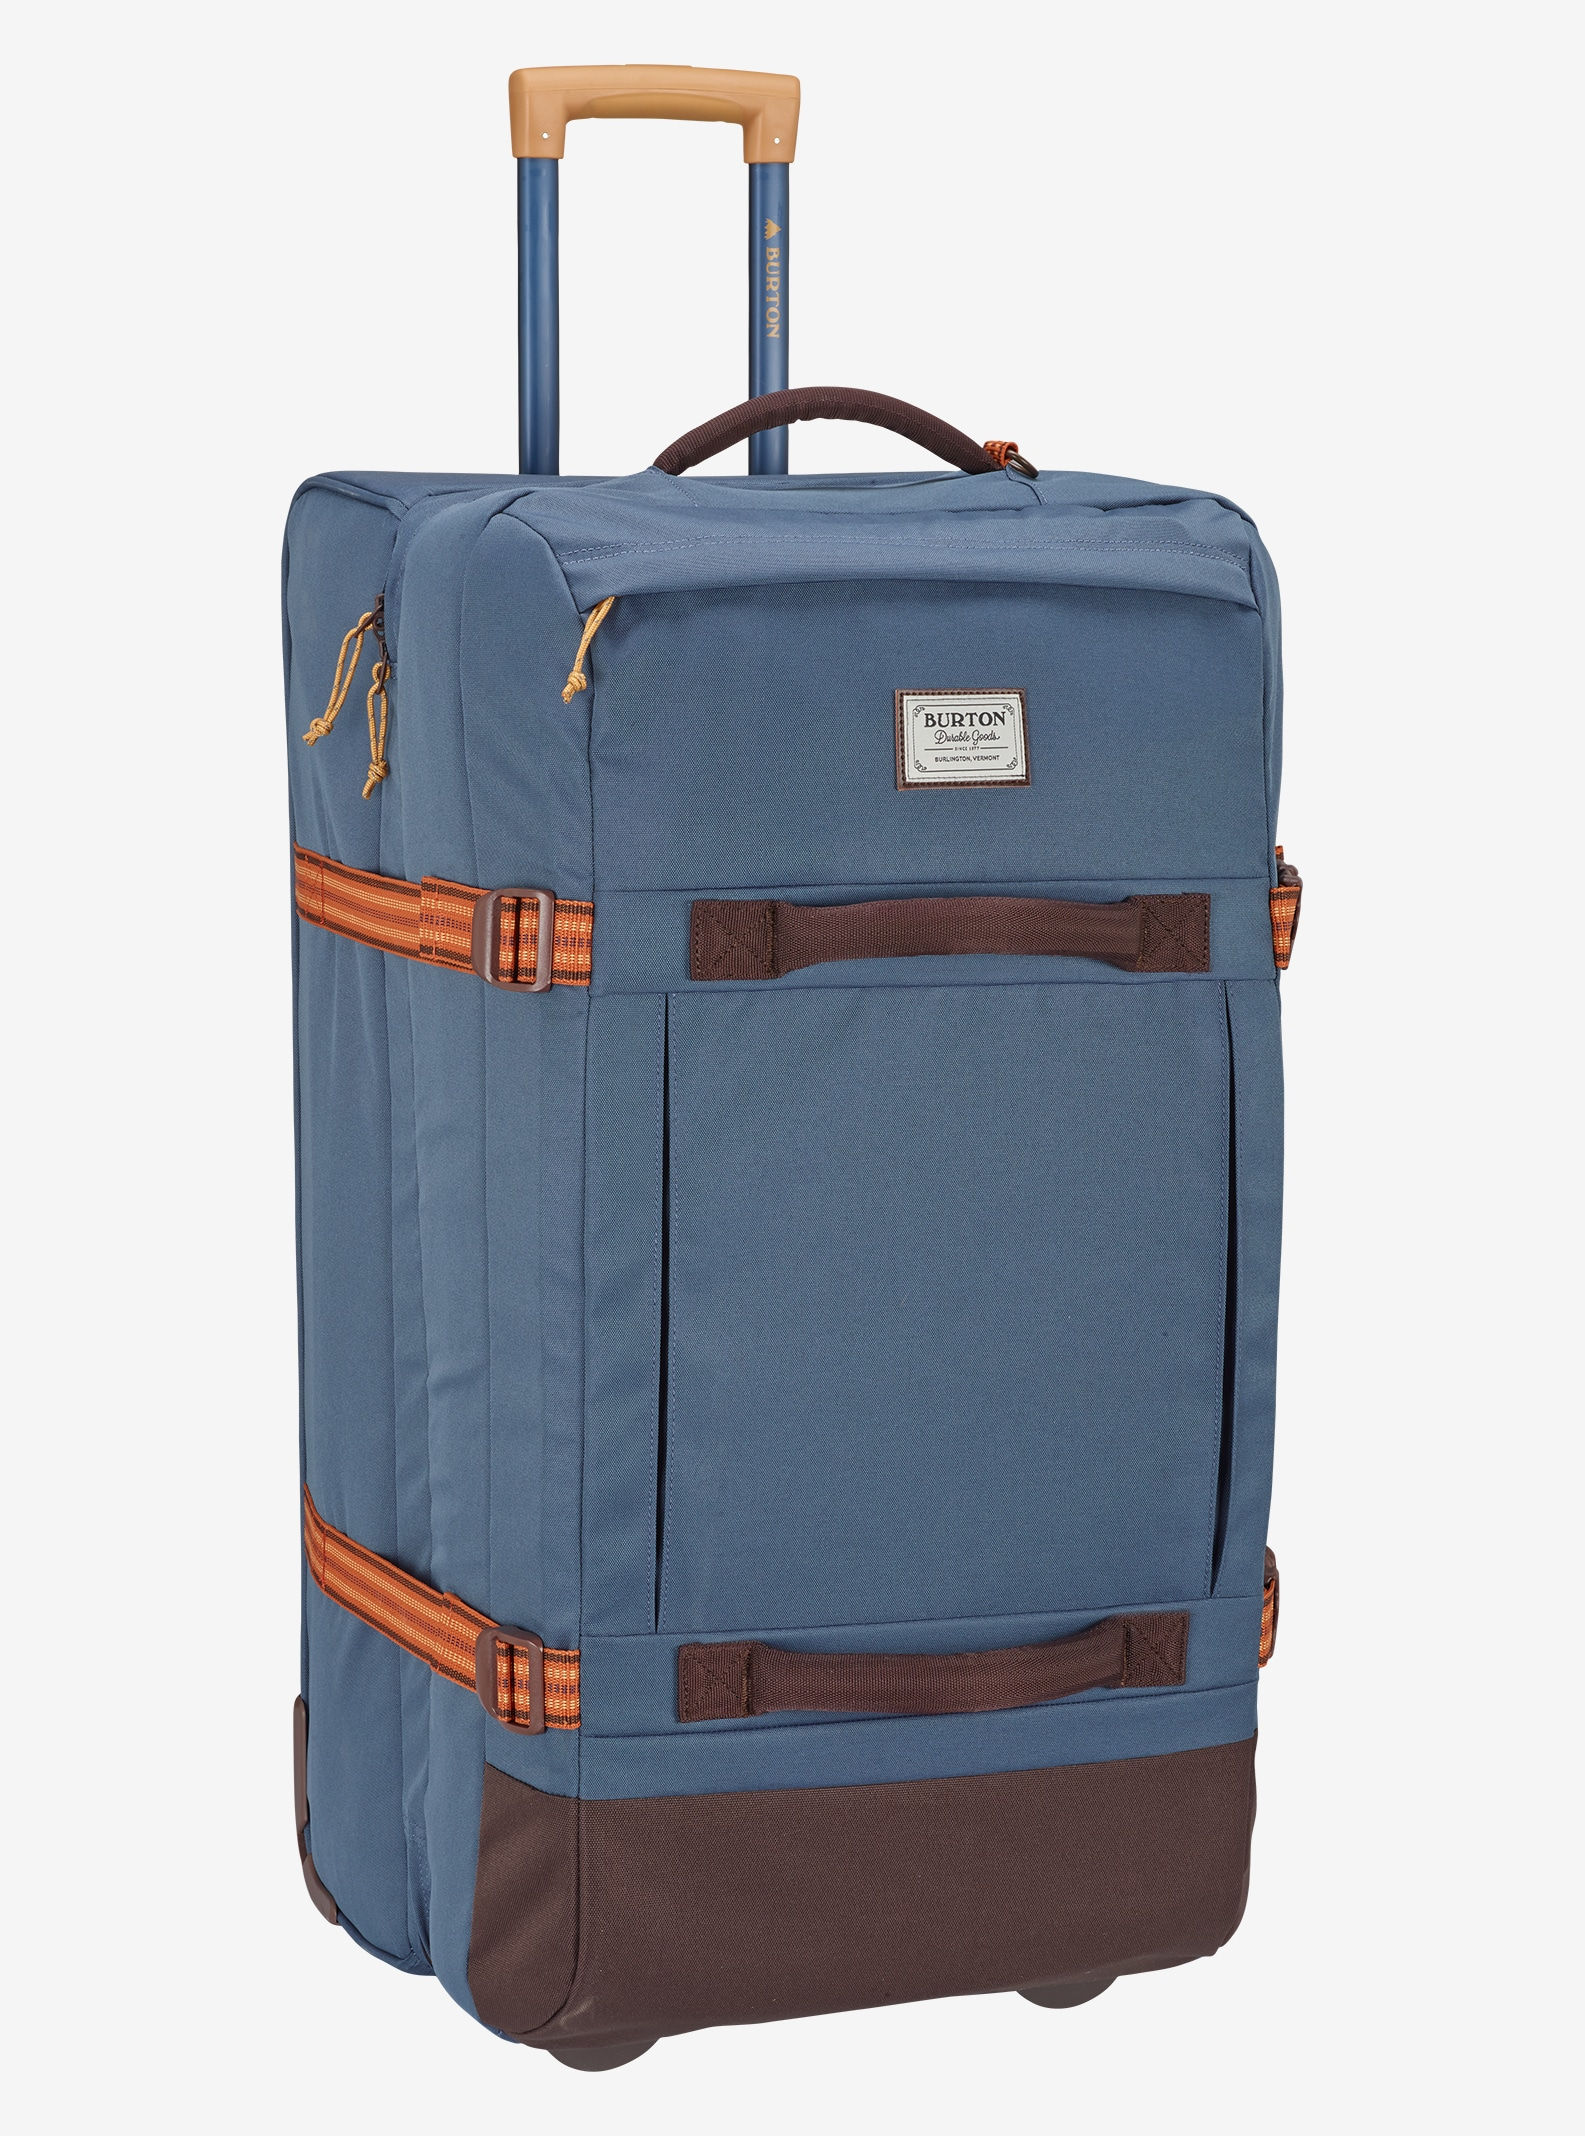 Sale Luggage | Burton Snowboards